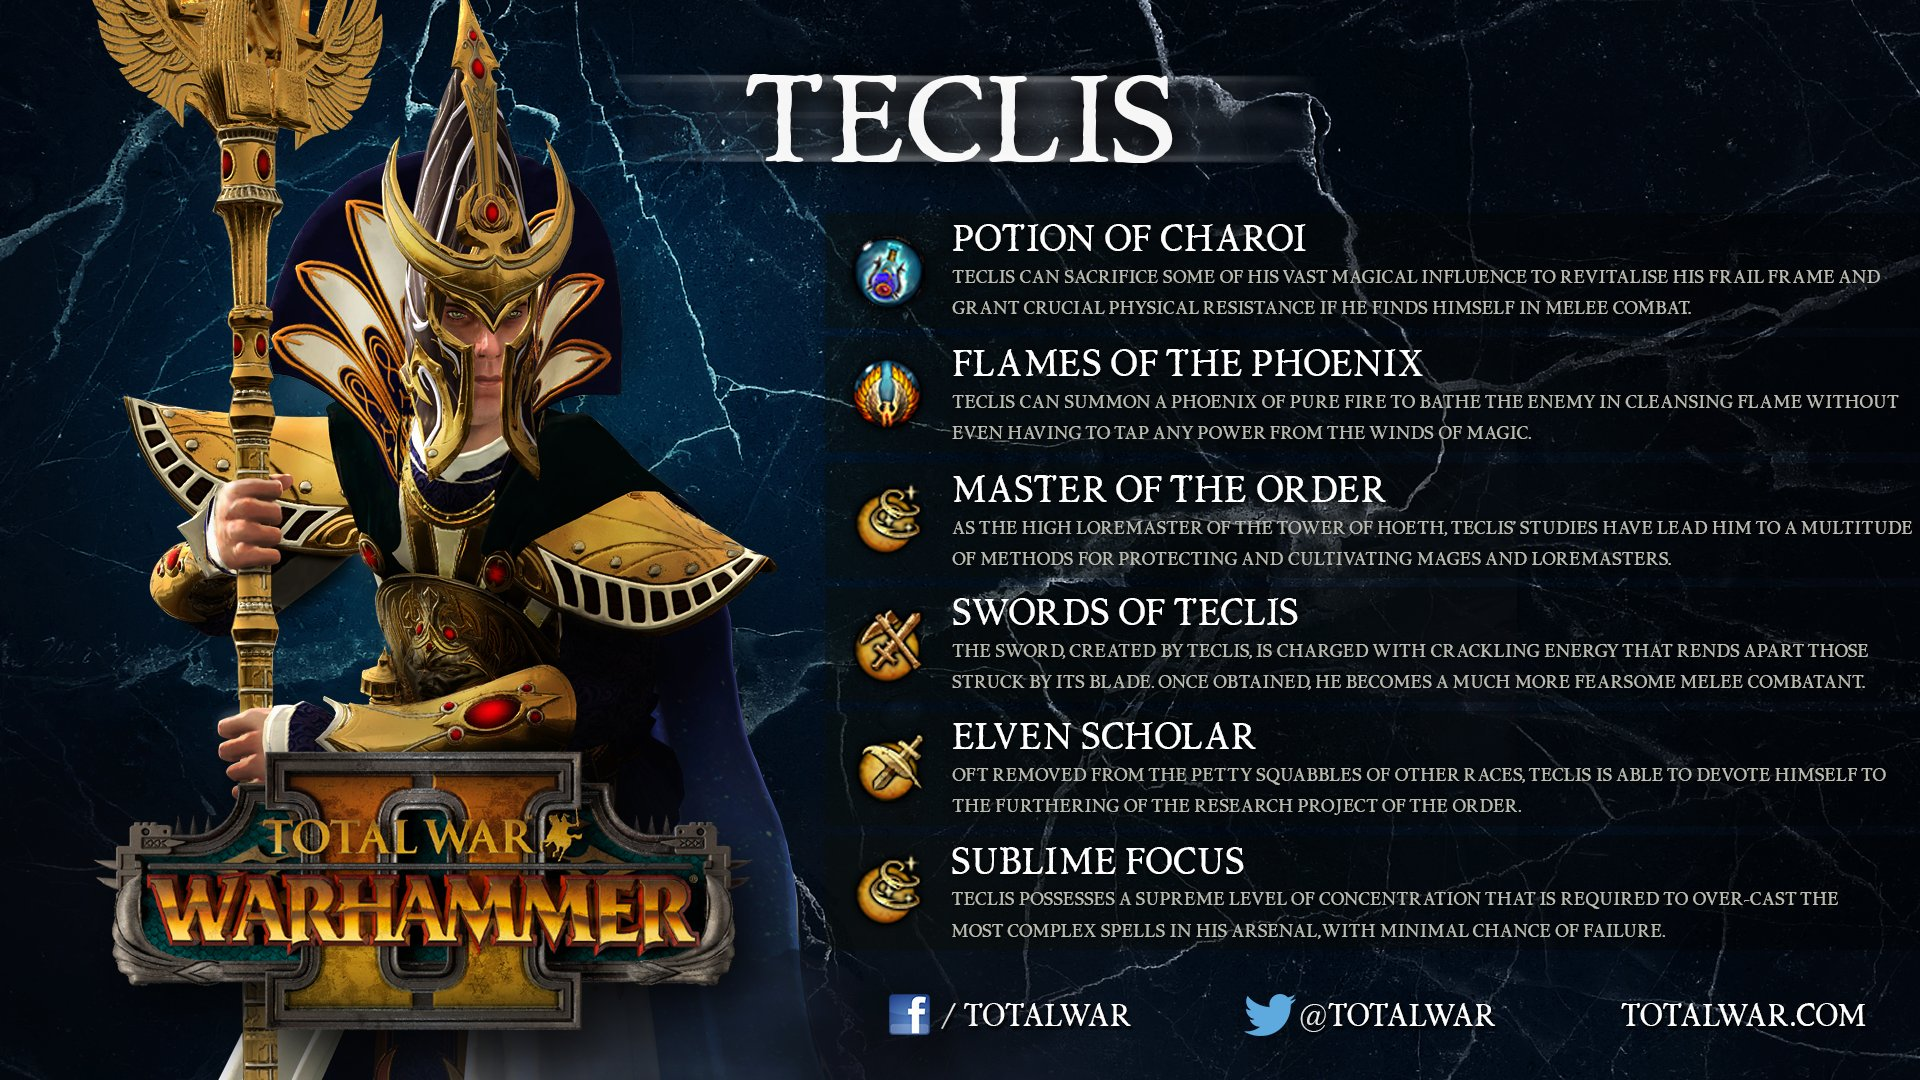 Steam Community Gids Legendary Lord Quest Item Steps Updated For The Warden And The Paunch Dlc How to play the new lizardmen lord available in the hunter and the beast dlc for total war #hunterandbeast #warhammer2 #totalwar #warhammer a noob's guide to nakai the wanderer. steam community